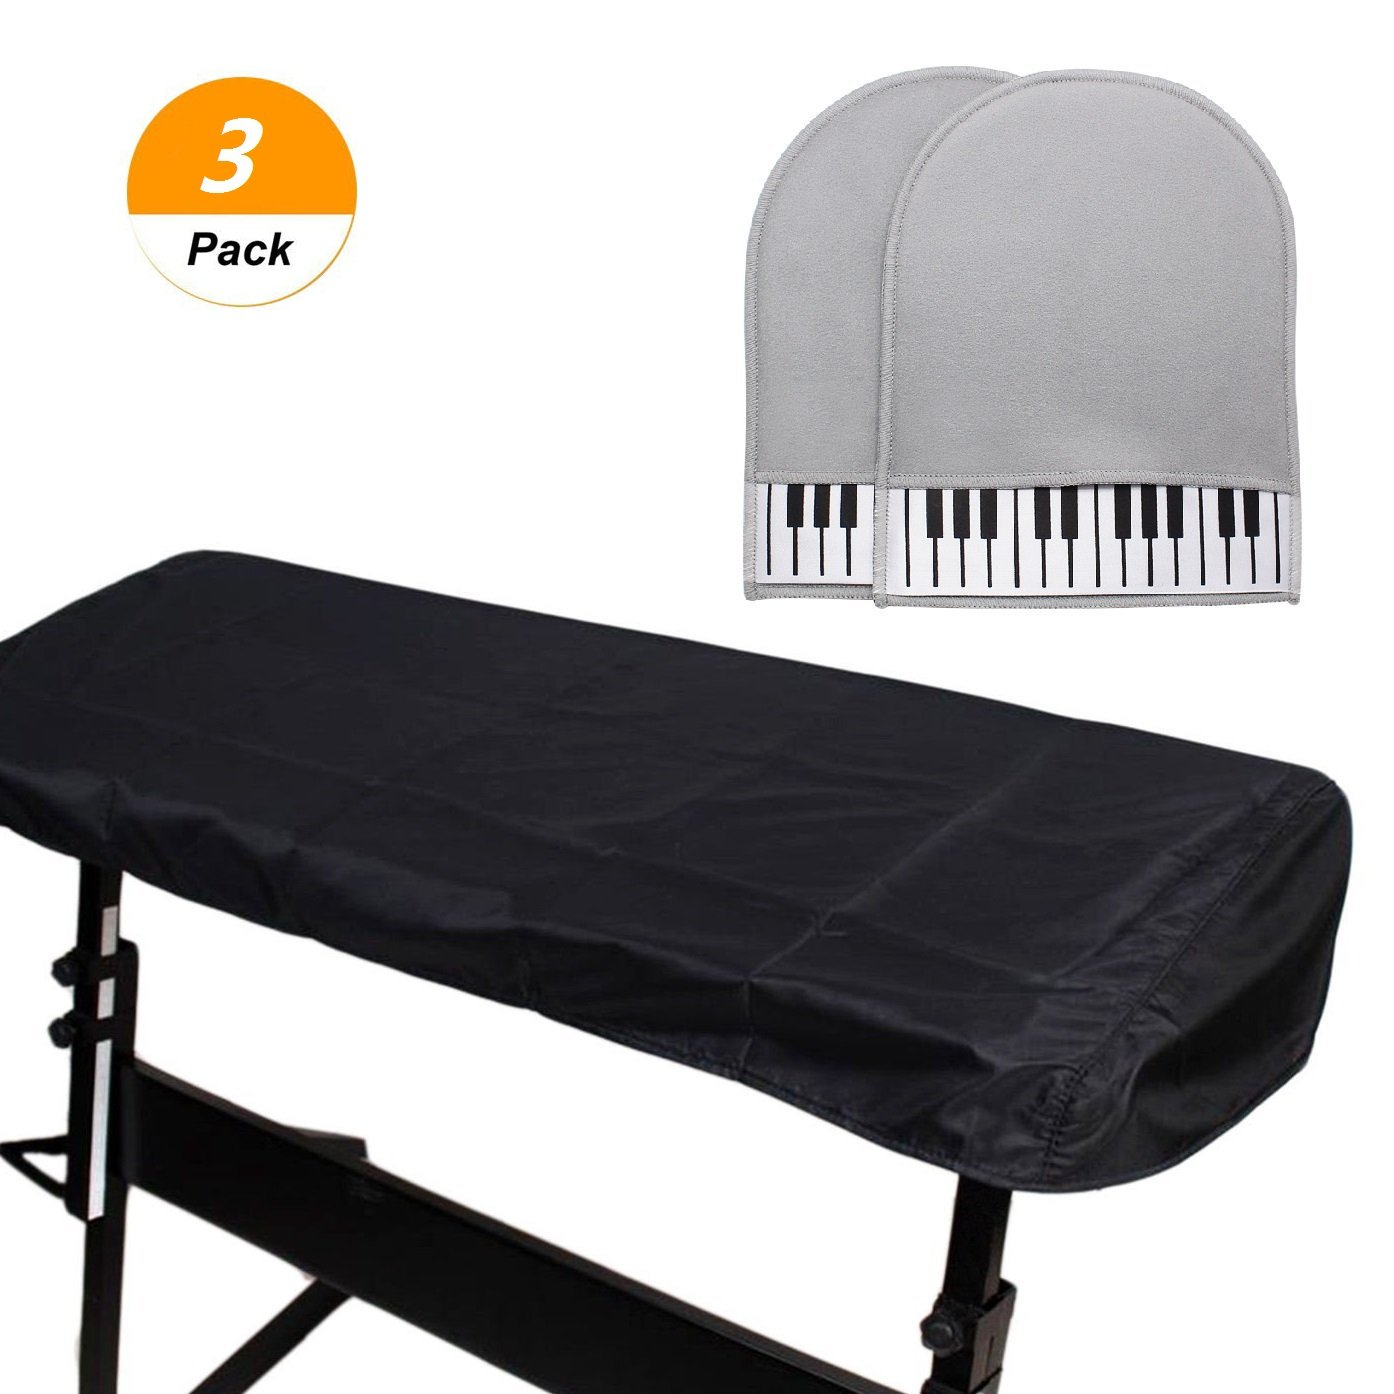 SelfTek 88 Keys Electronic Piano Keyboard Cover Stretchable Keyboard Dust Covers with 1 Pair of Cleaning Gloves